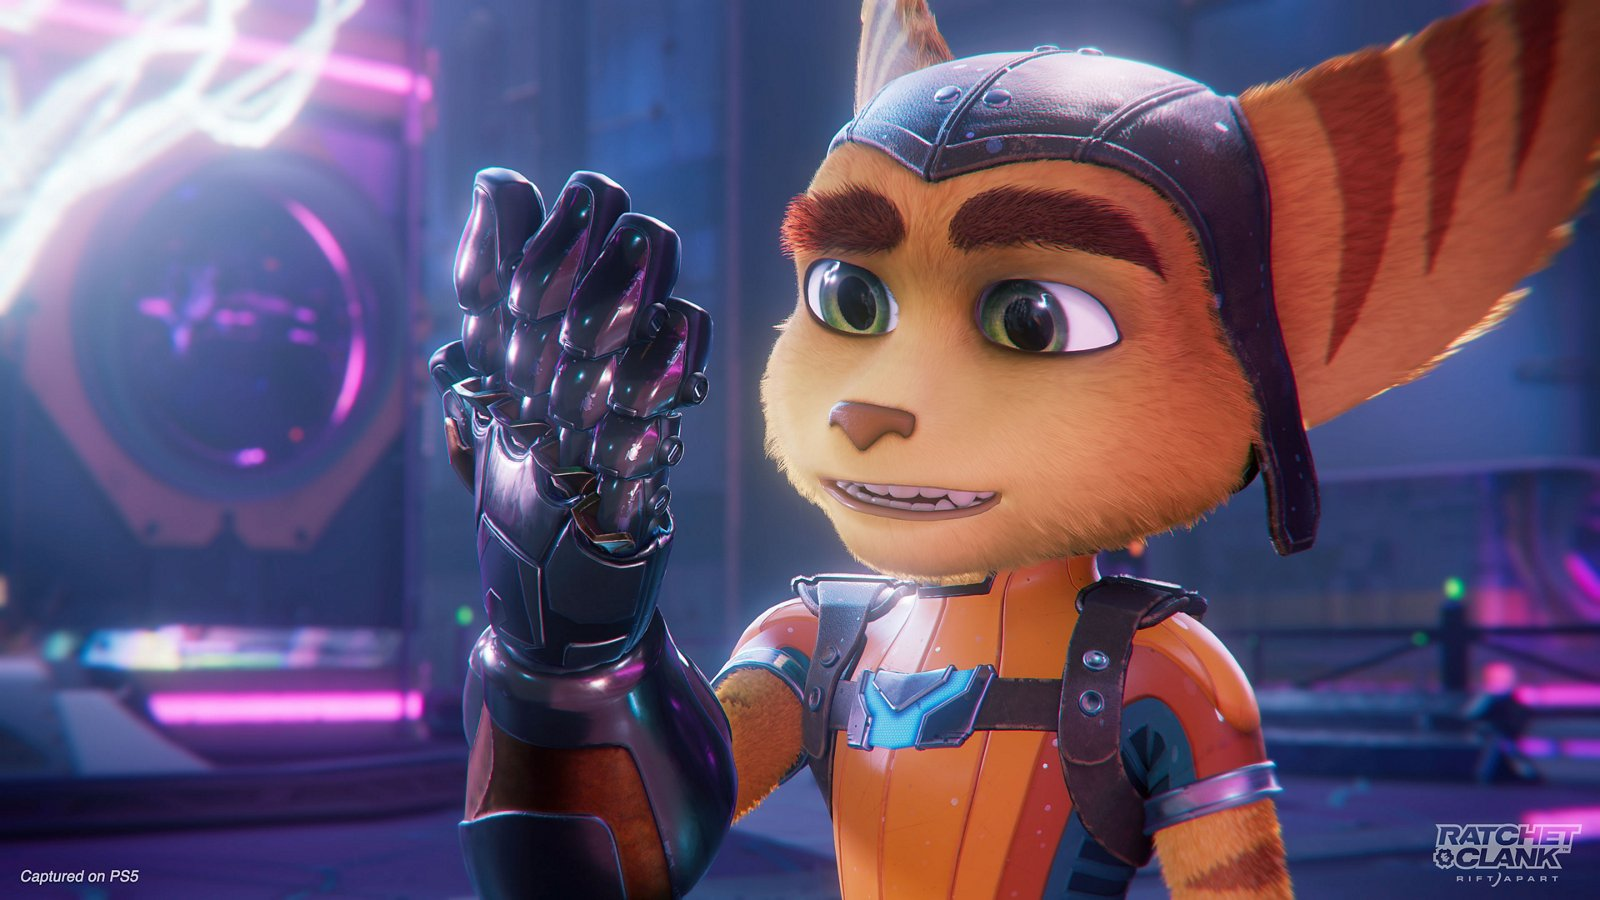 How to Change Difficulty in Ratchet & Clank Rift Apart